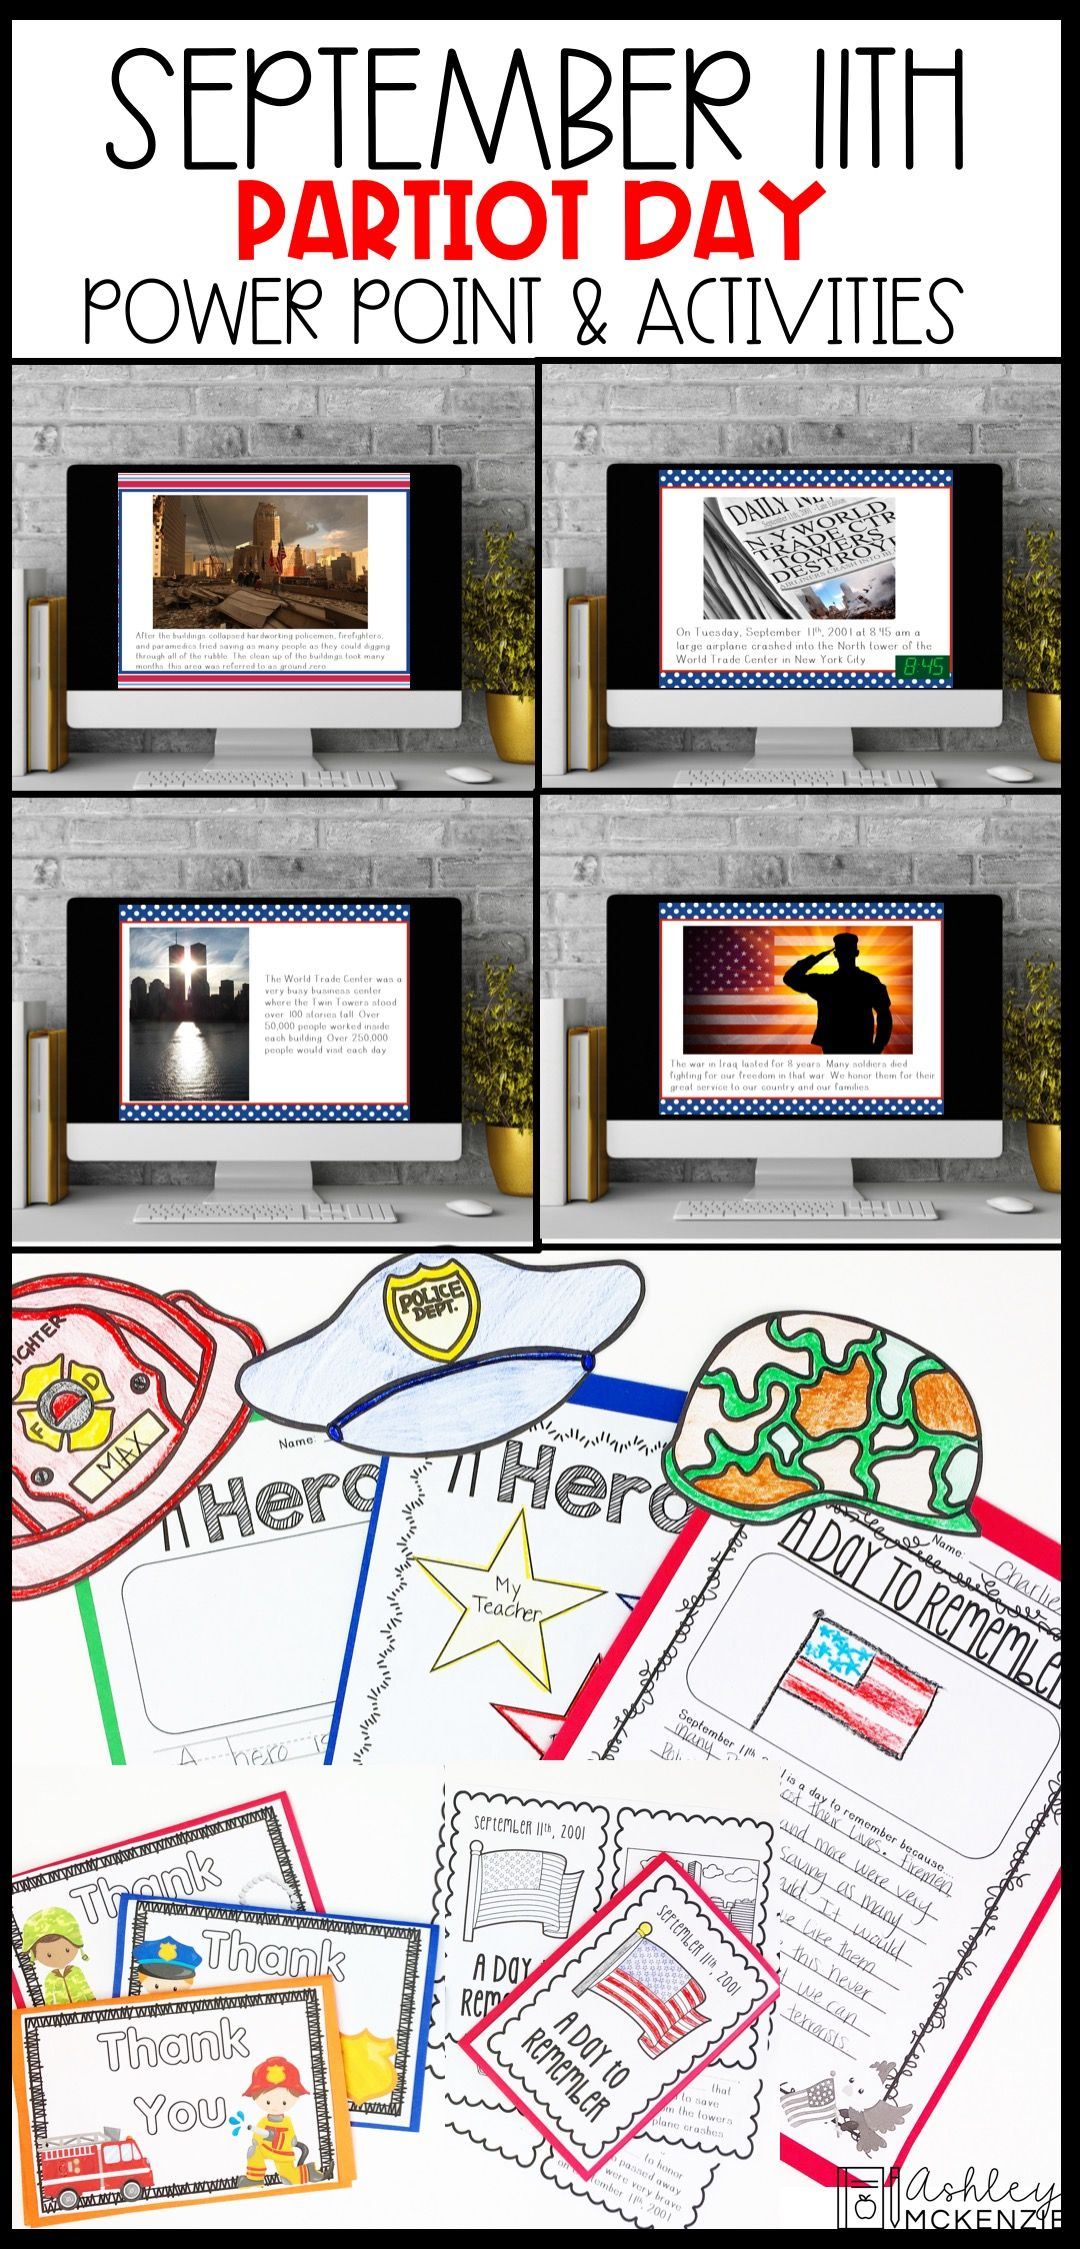 September 11th Patriot Day Power Point Amp Activities Lesson